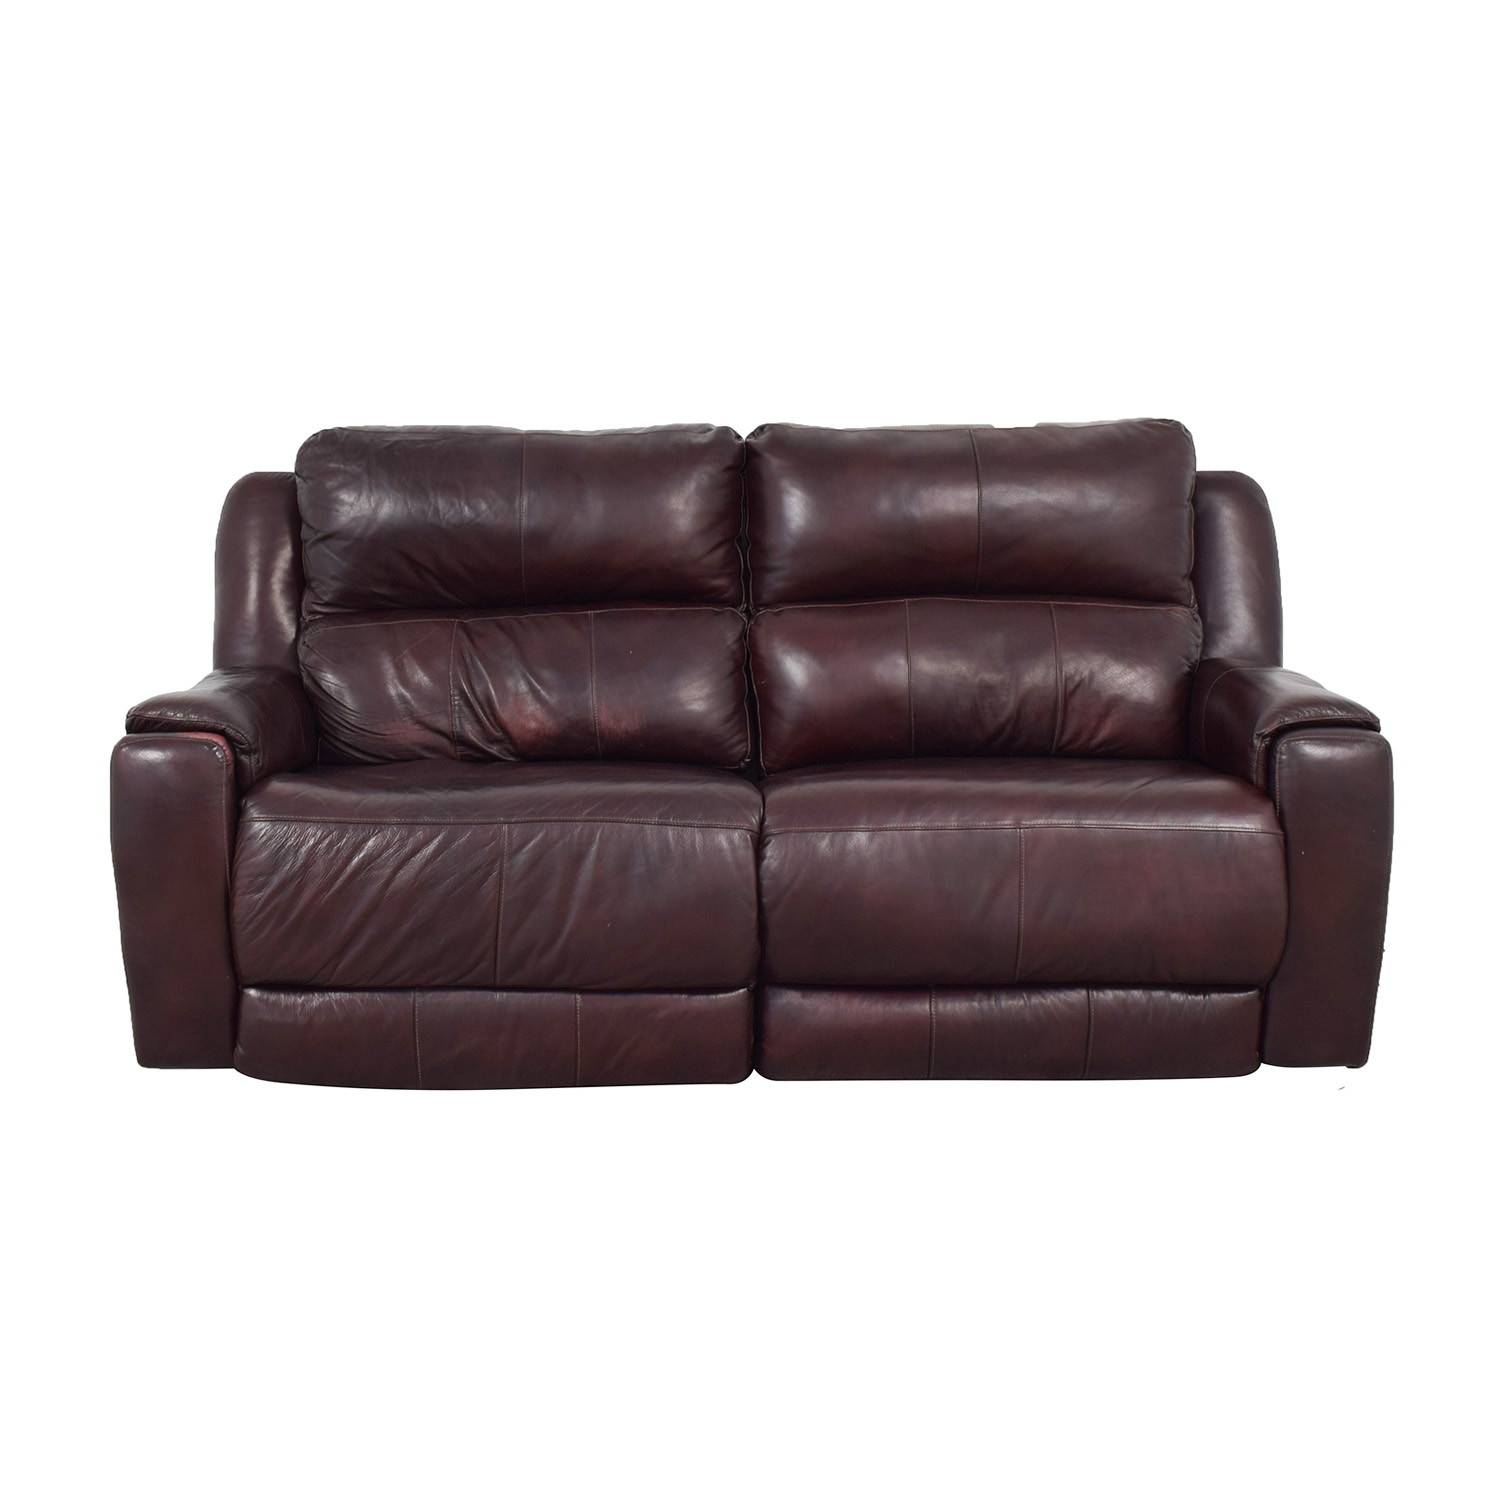 Raymour & Flanigan Raymour & Flanigan Brown Leather Electric Recliner brown